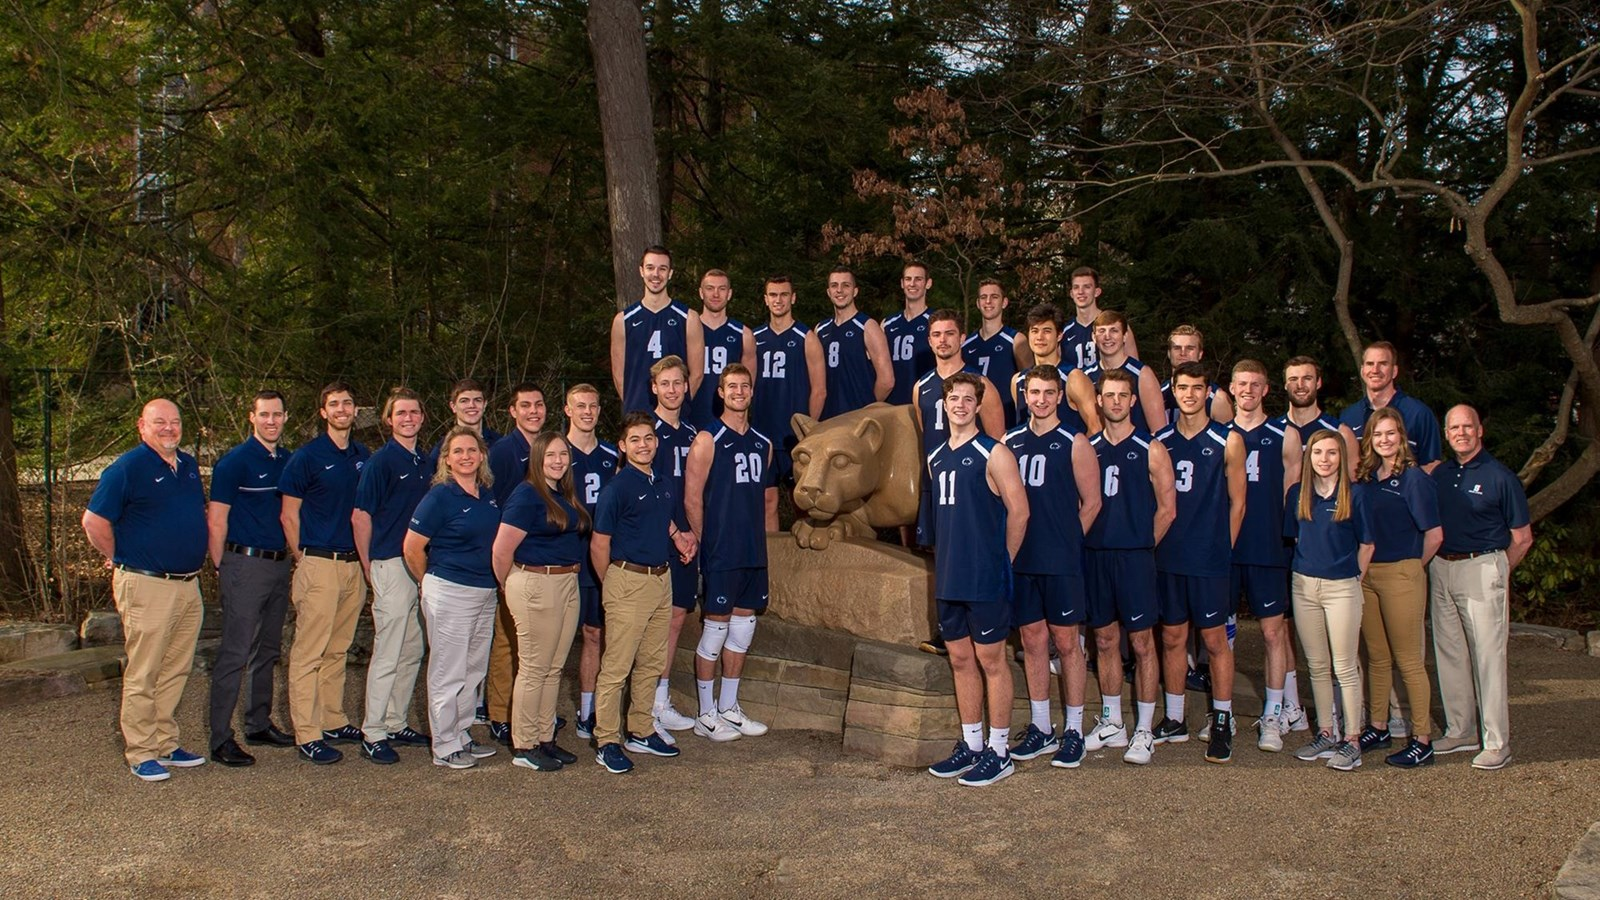 2020 Men S Volleyball Roster Penn State University Athletics